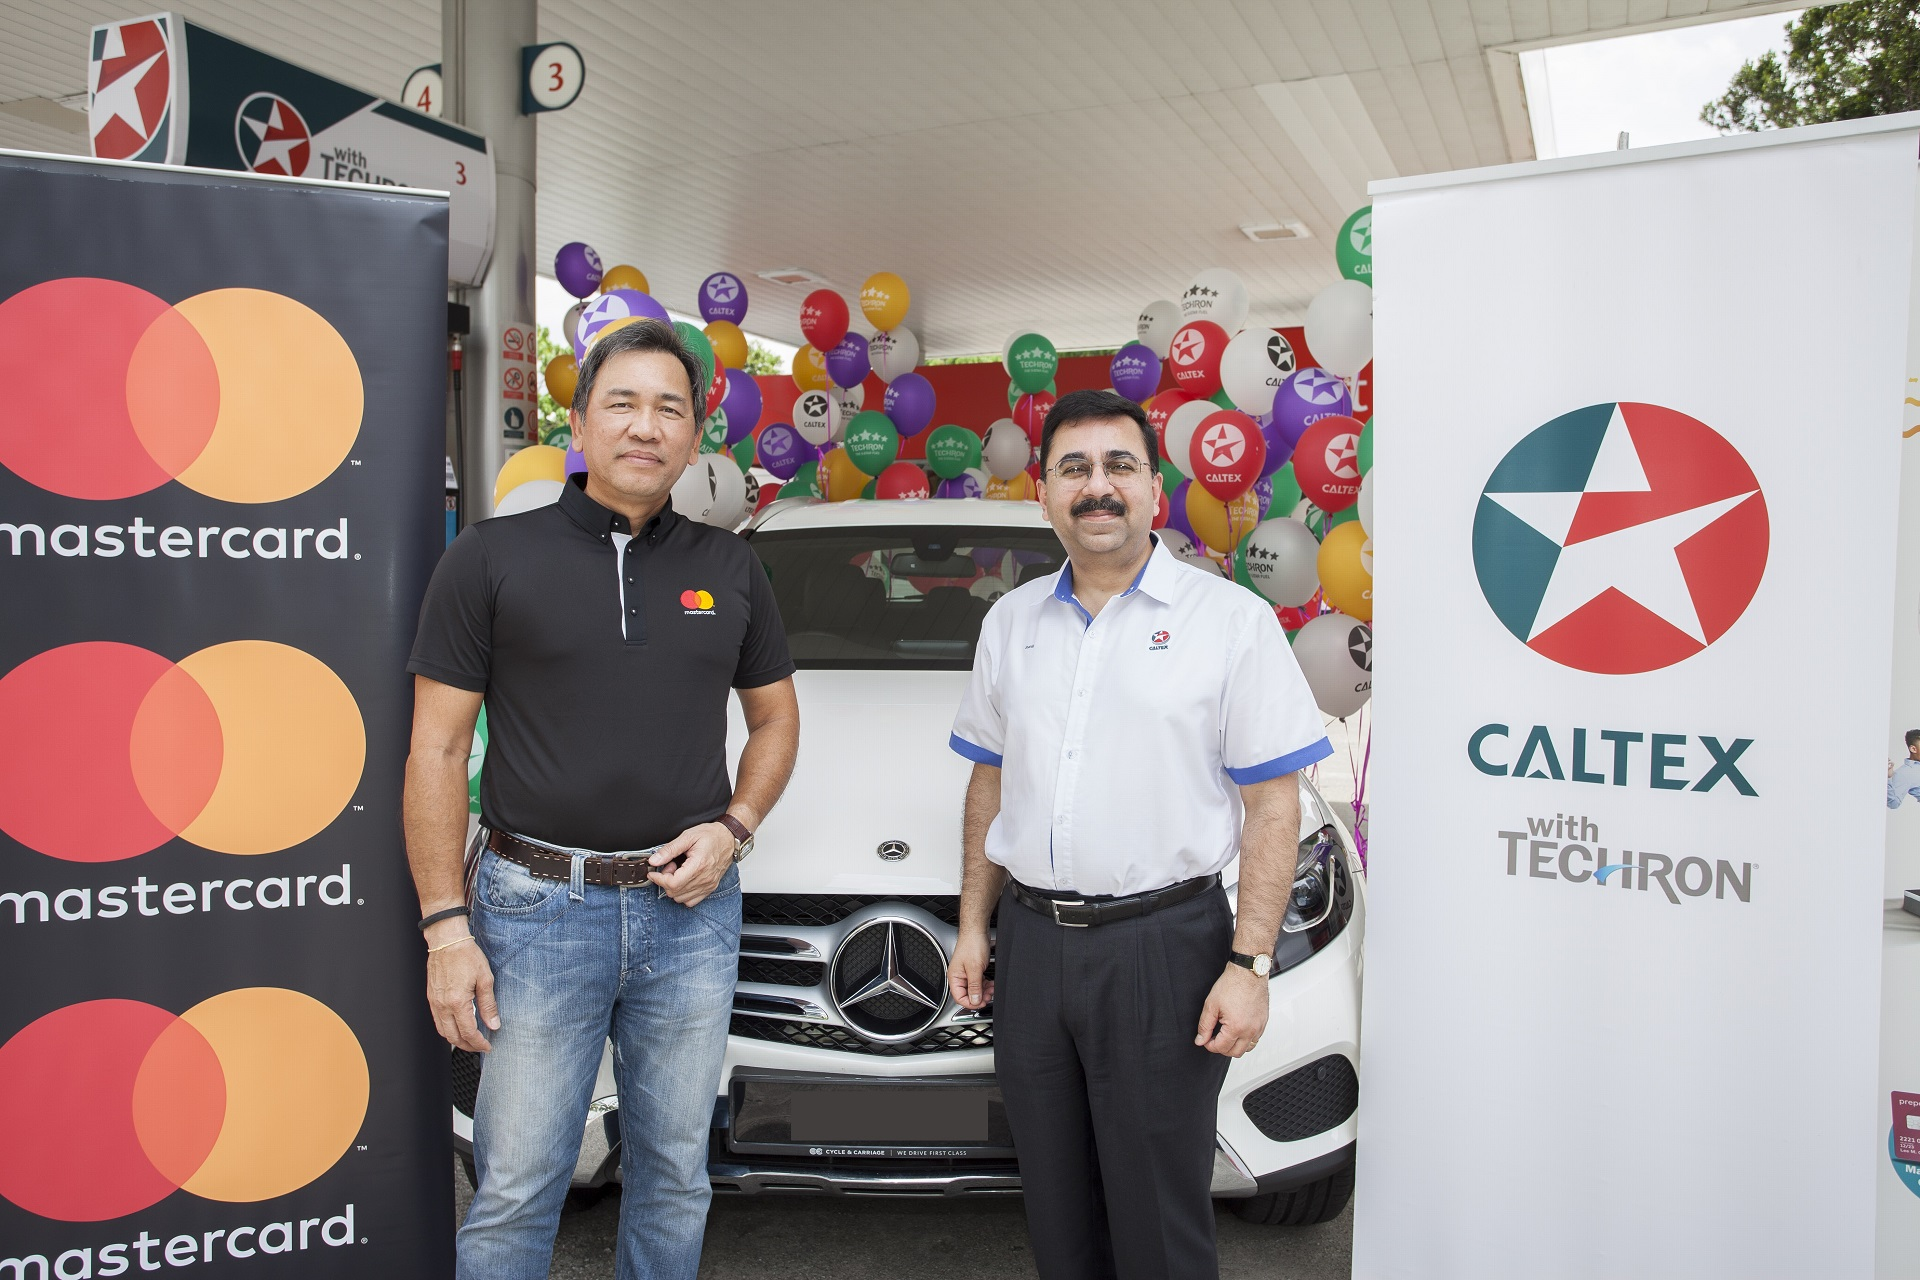 tap pump and go with mastercard to win a mercedes benz glc 200